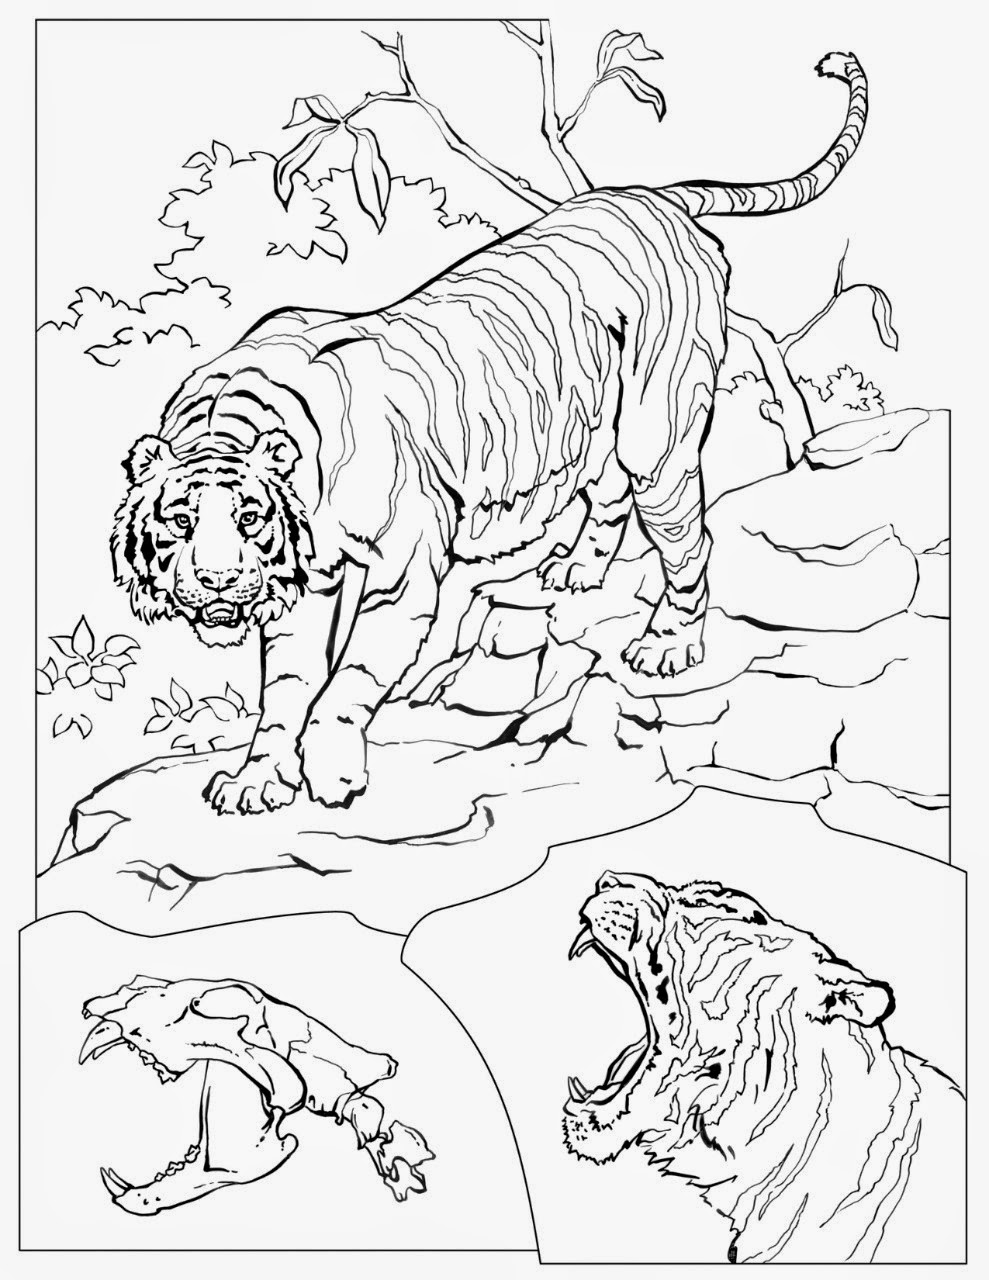 National Geographic Coloring Pages. Grey Seal. National Geographic ...